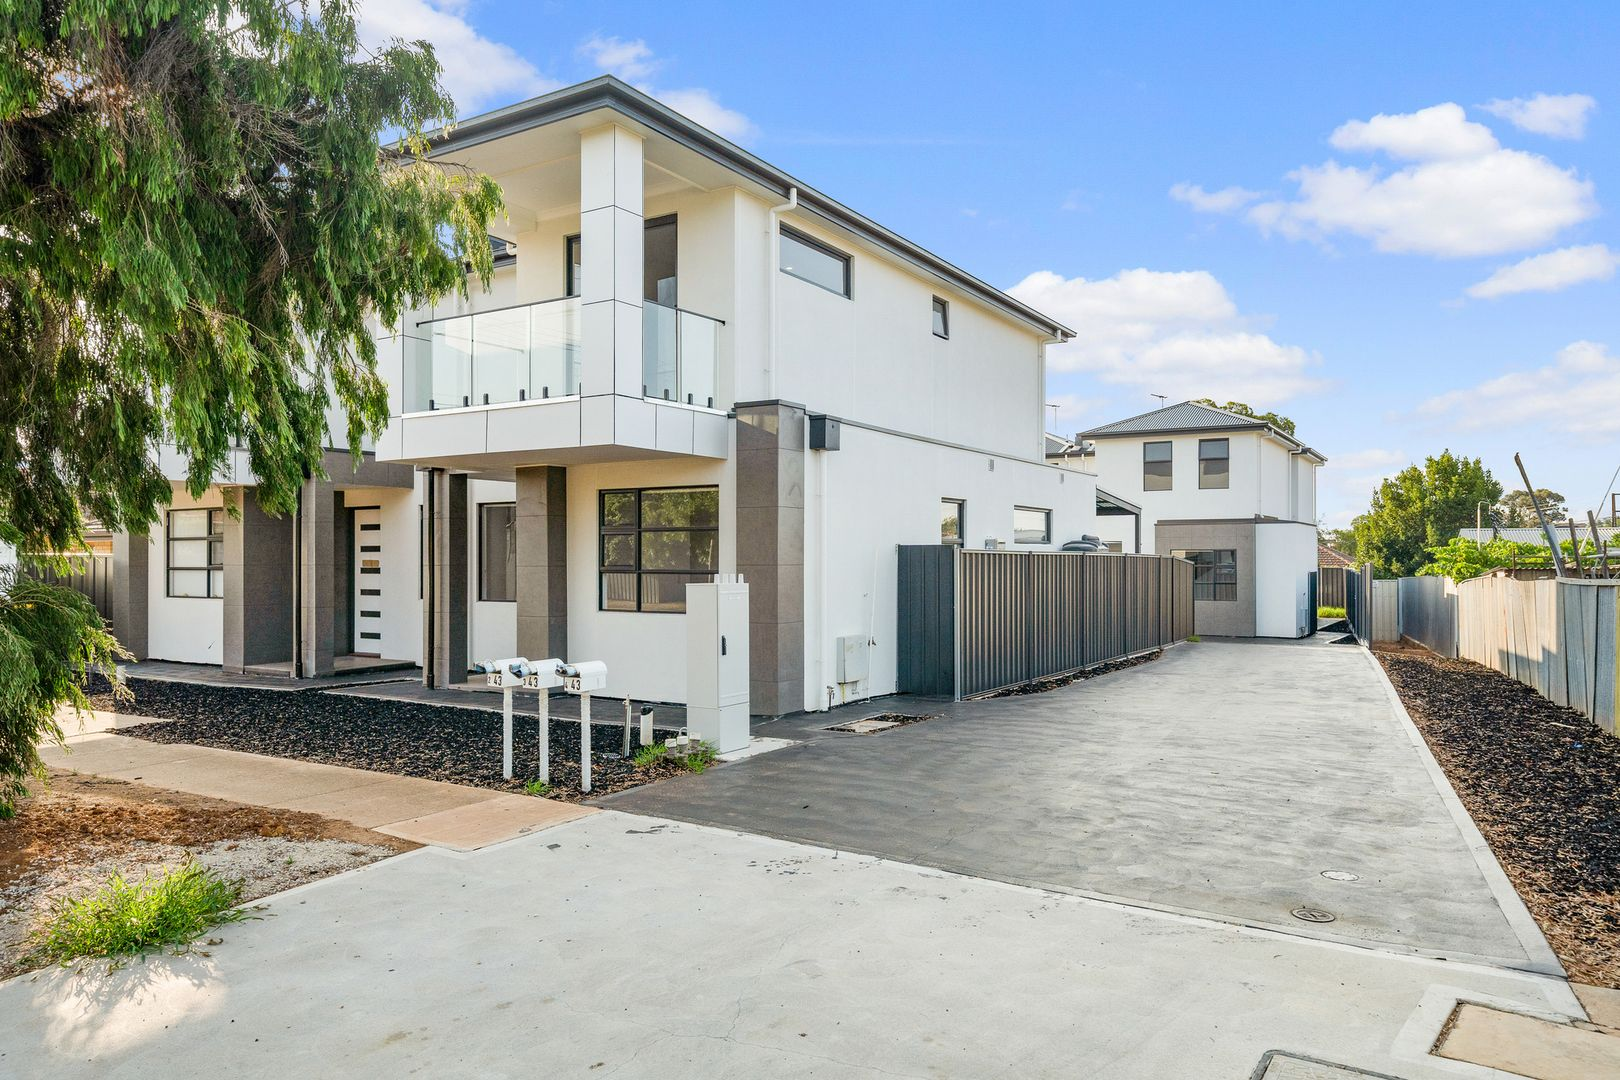 2/43 Clairville Road, Campbelltown SA 5074, Image 1